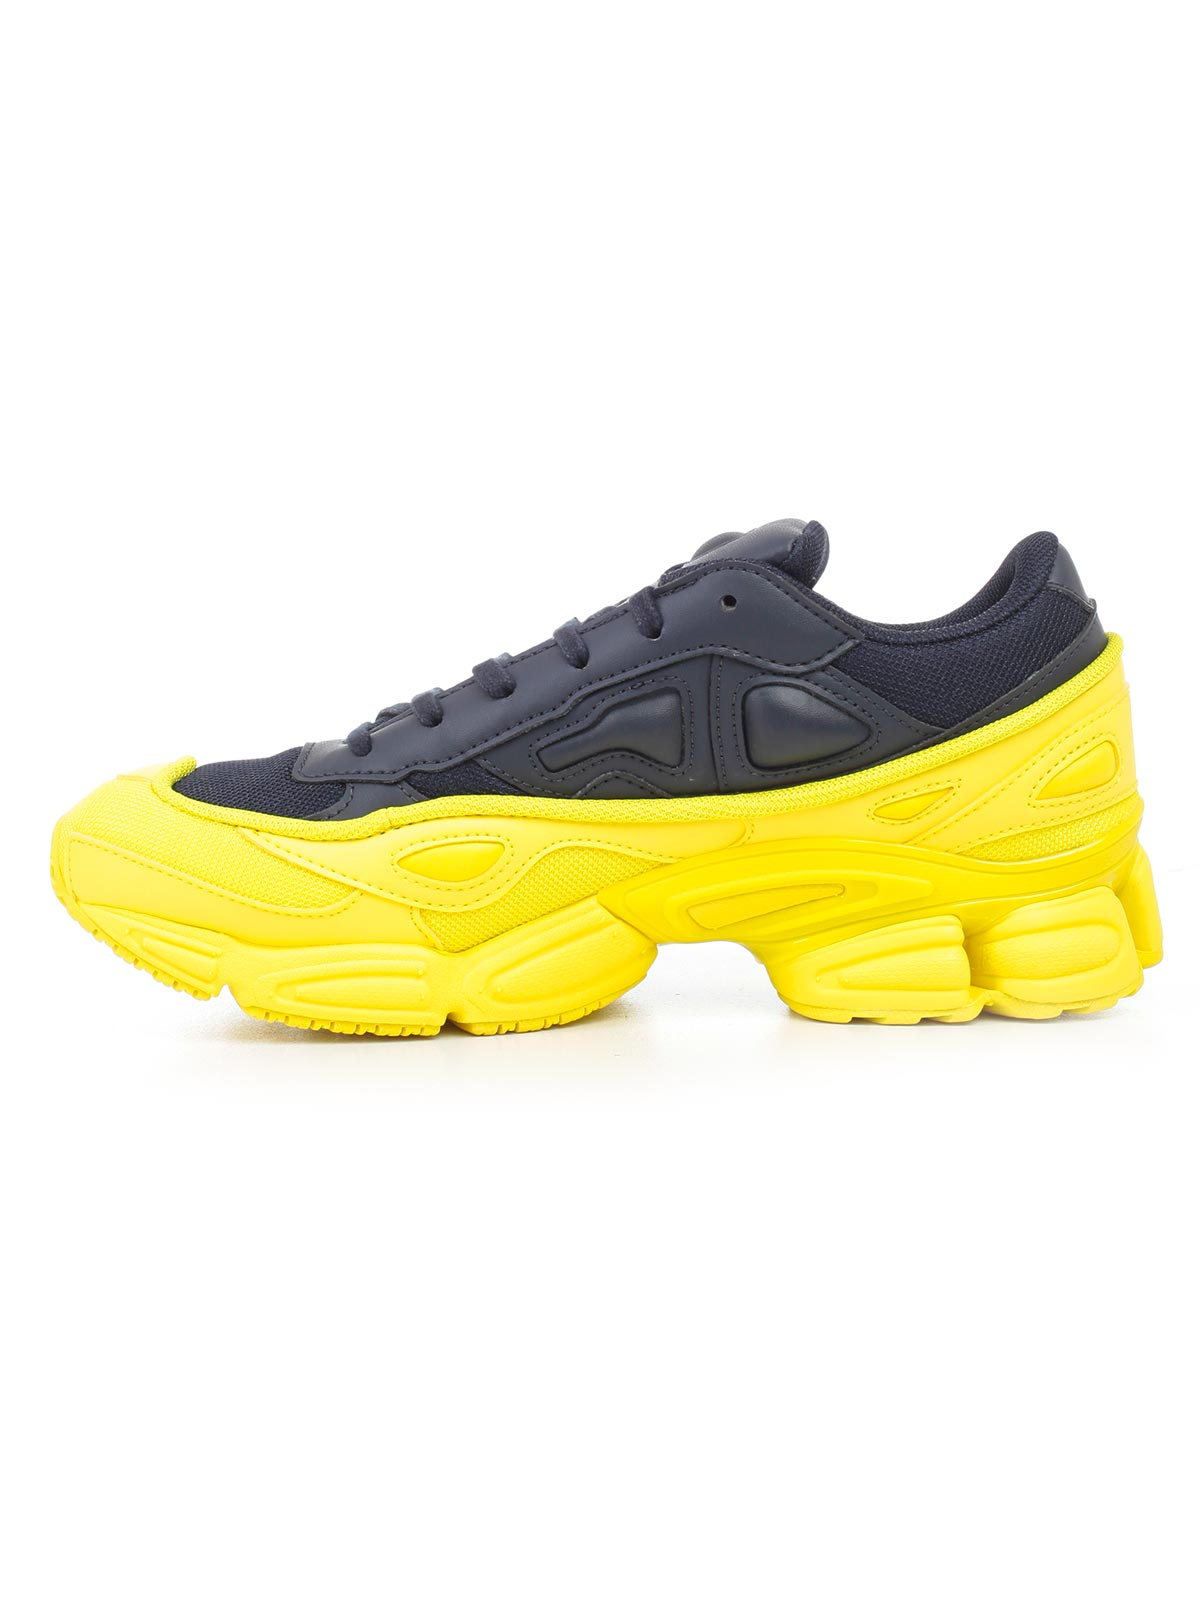 Picture of Adidas X Raf Simons Shoes